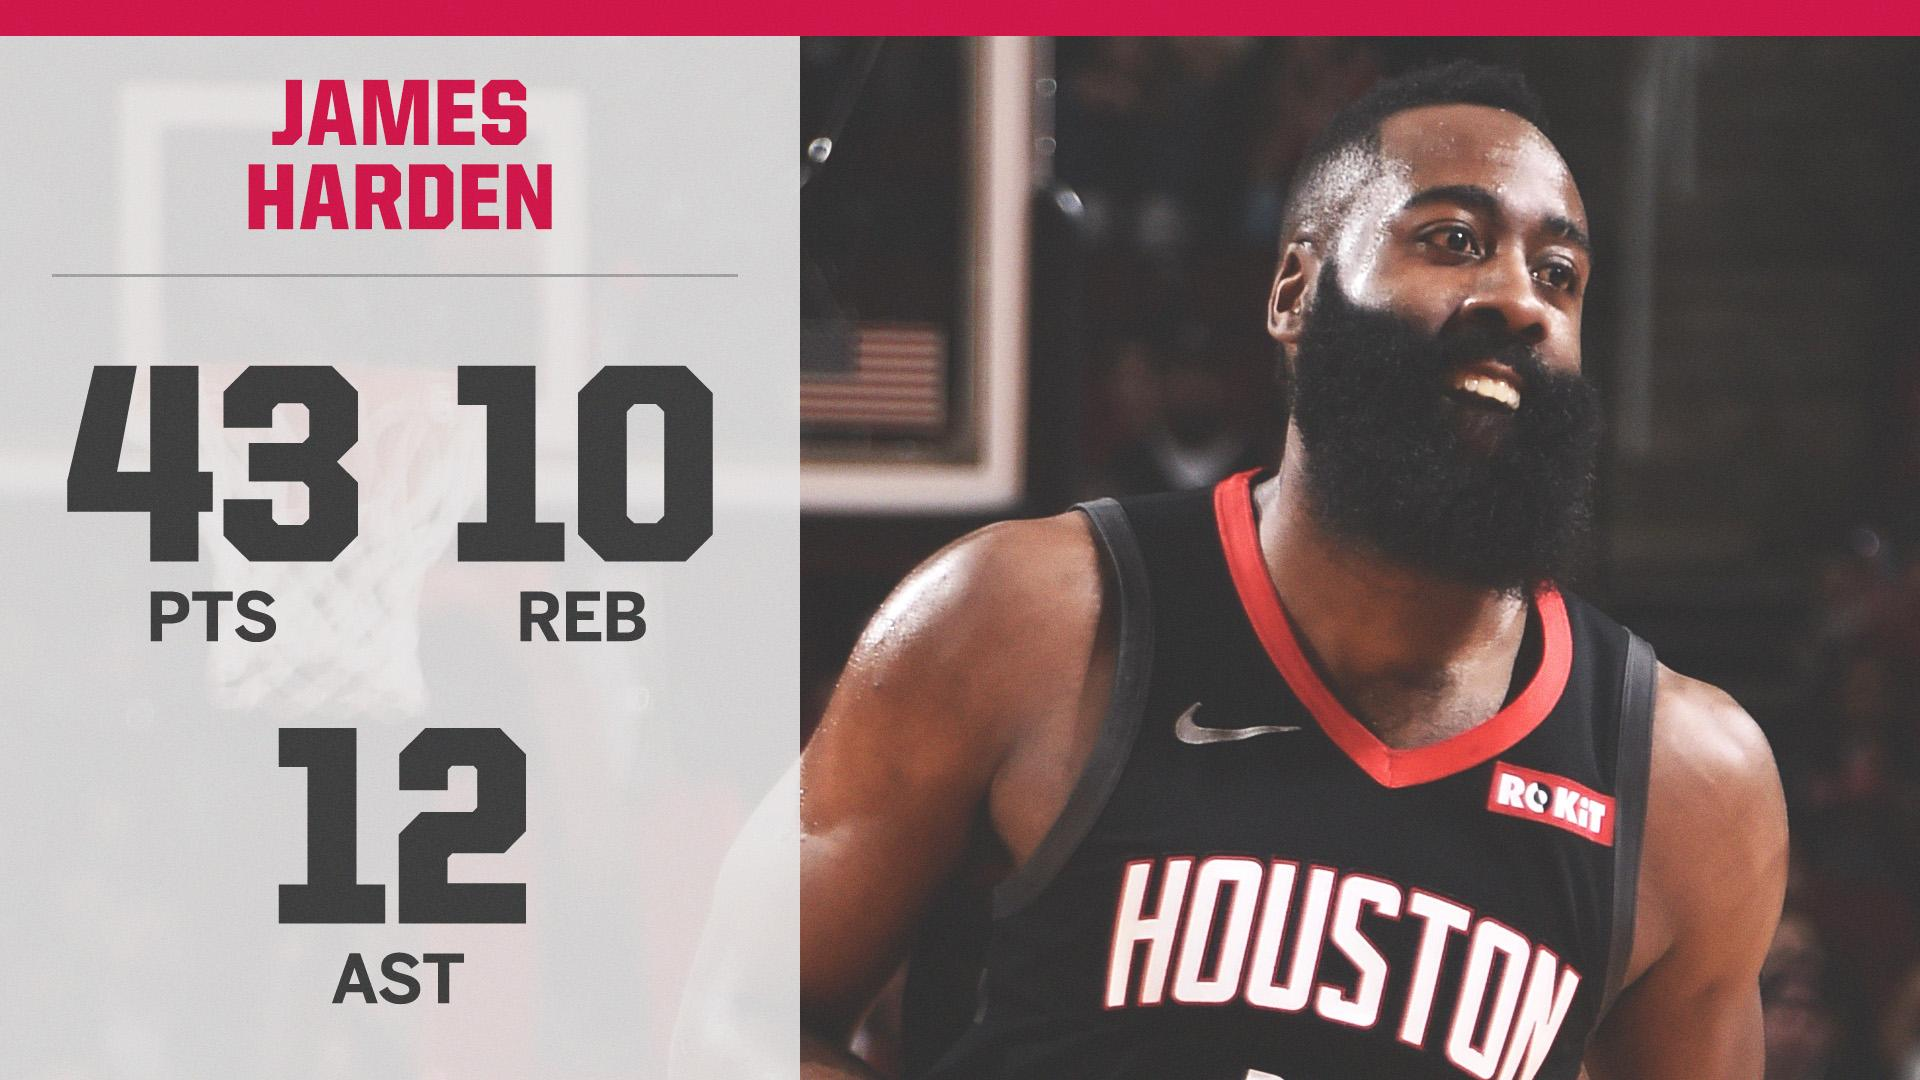 And James Harden didn't even play the 4th quarter �� https://t.co/oum4pqESOS